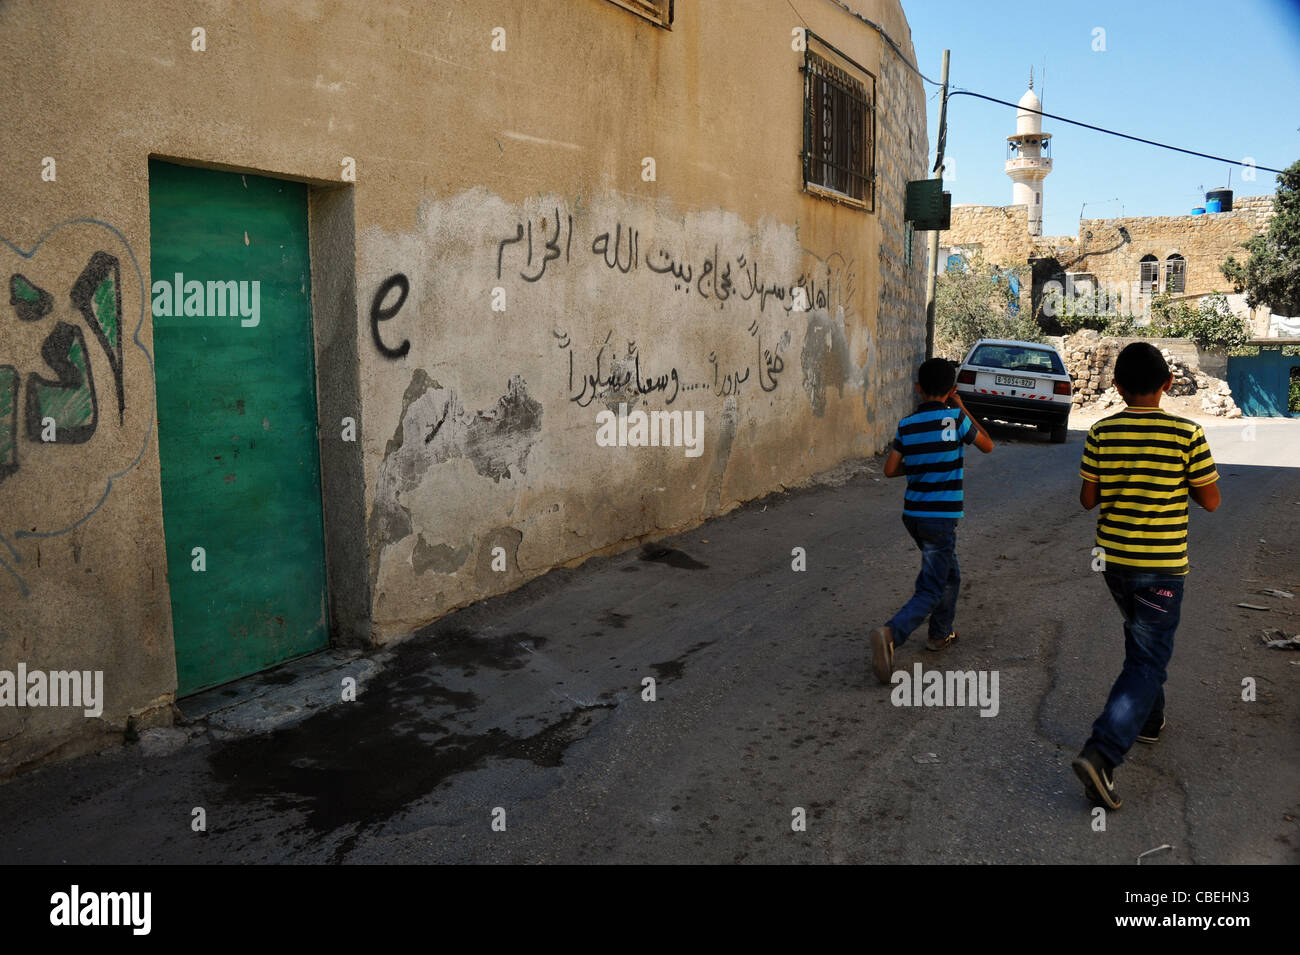 Marking of the Israeli colonists during their violent comings in the Palestinian villages., The 'E' which - Stock Image